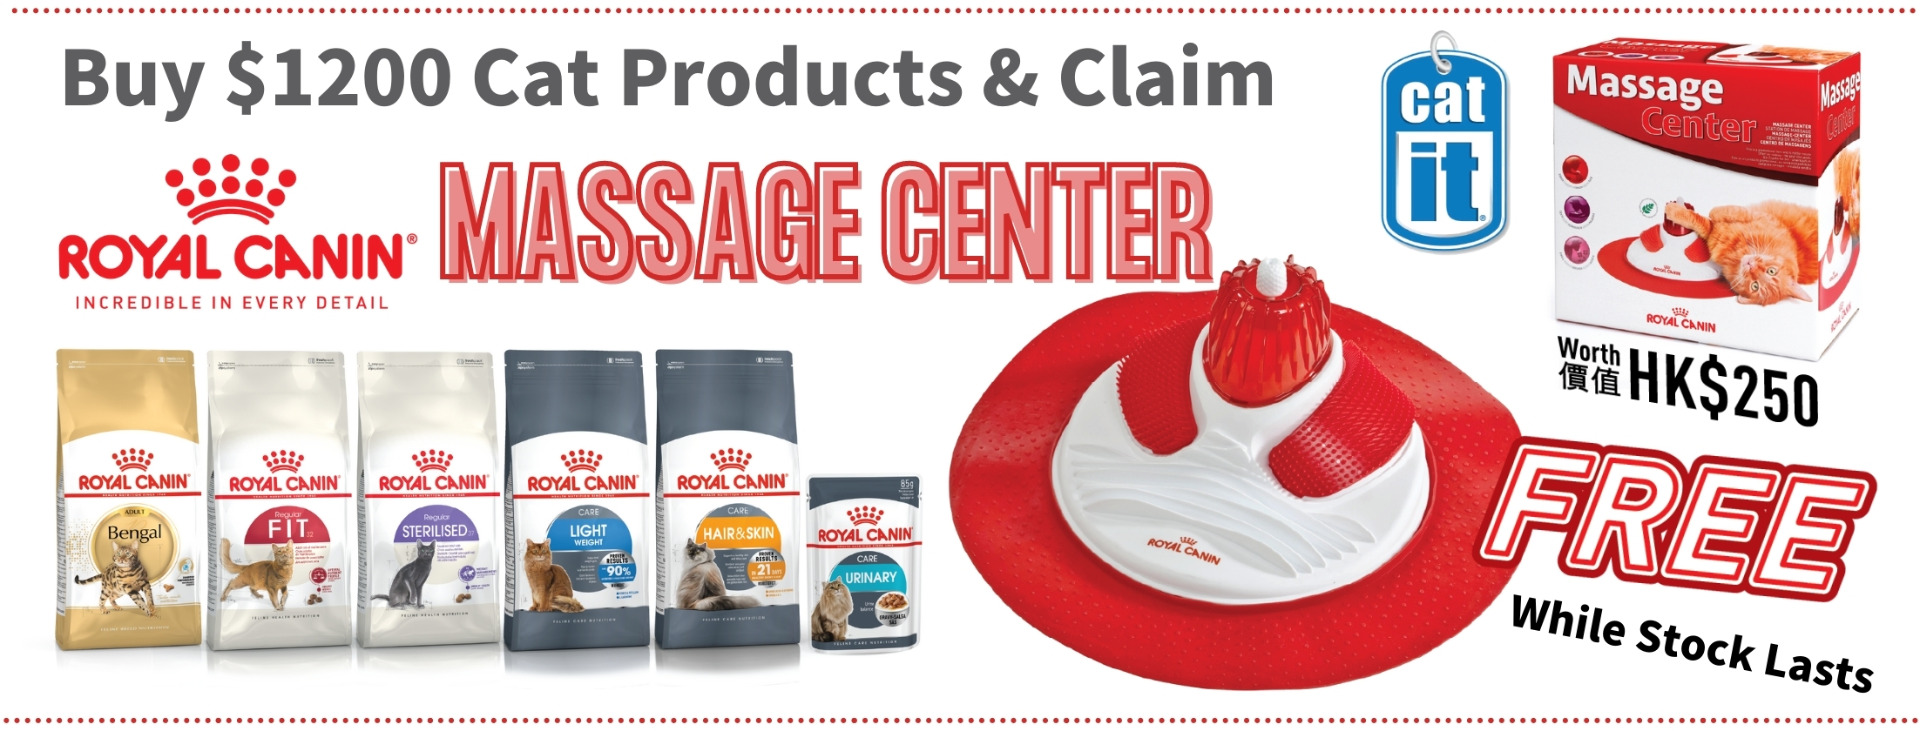 FREE Royal Canin Massage Center